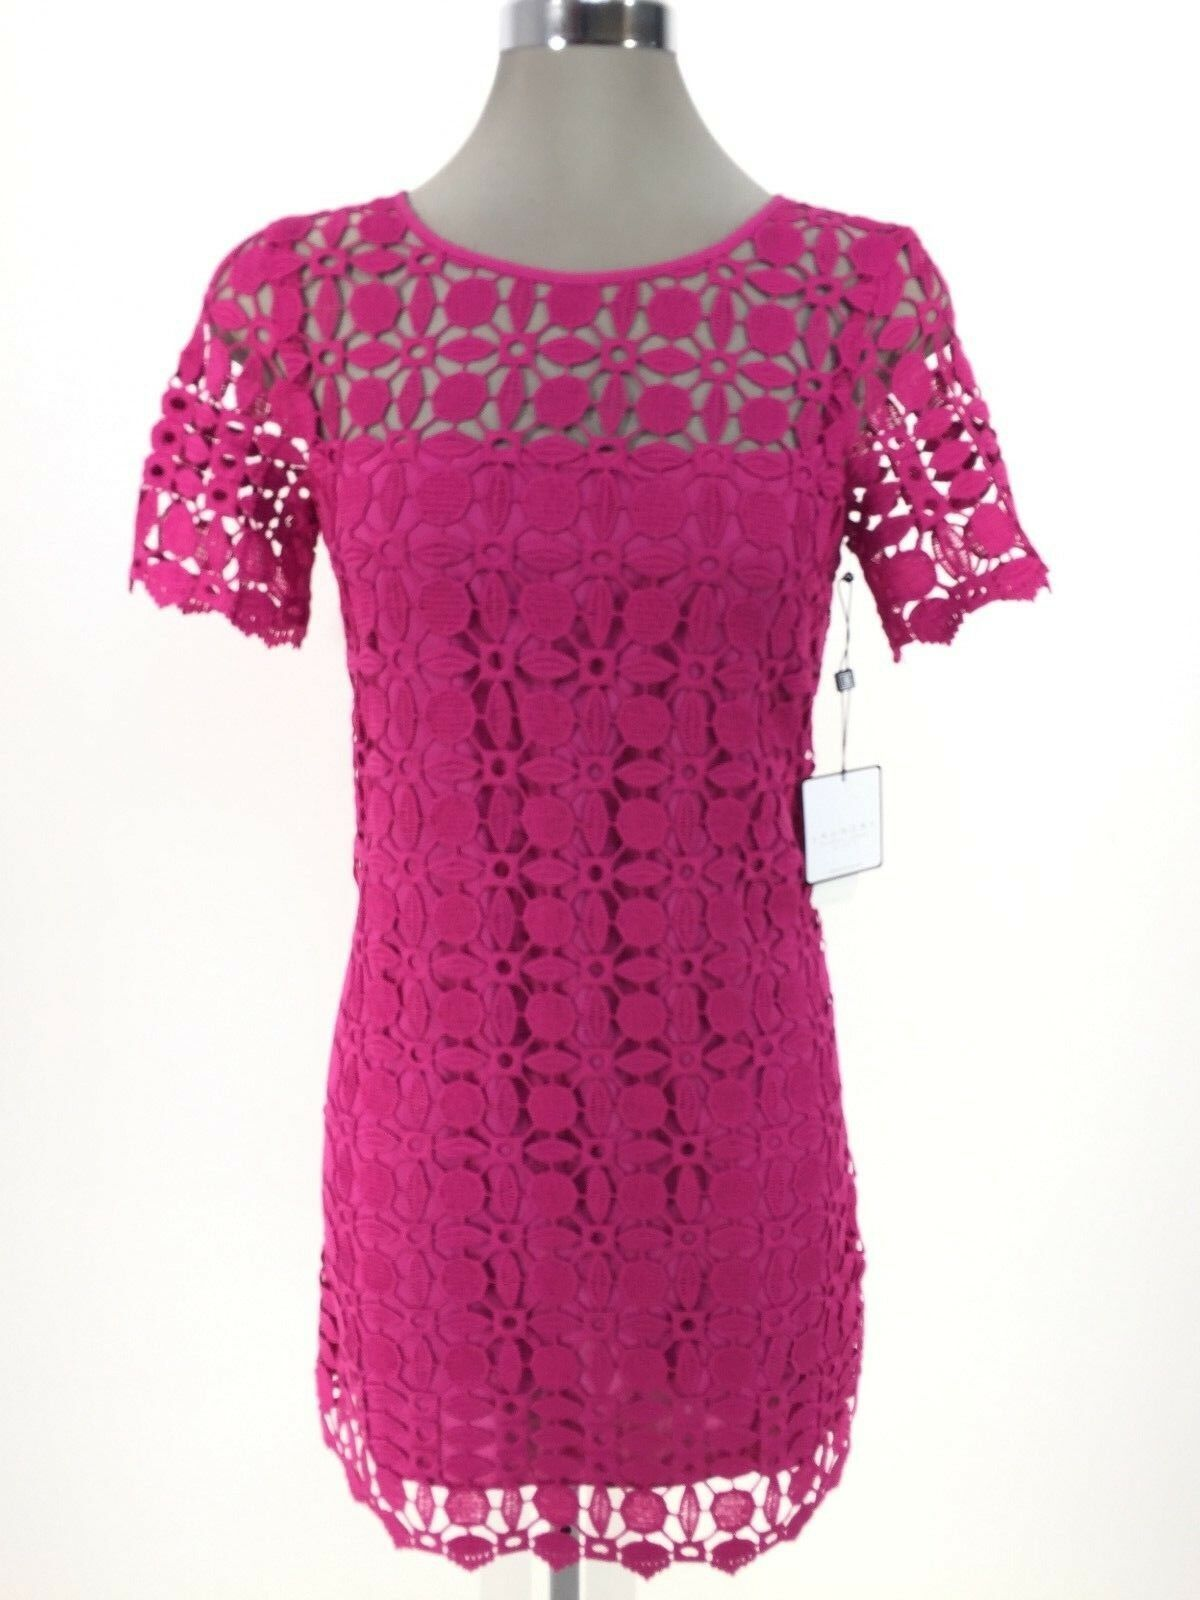 Laundry by Shelli Segal NWT Modern VERY BERRY  Lace Shift Dress, size 0 2 6